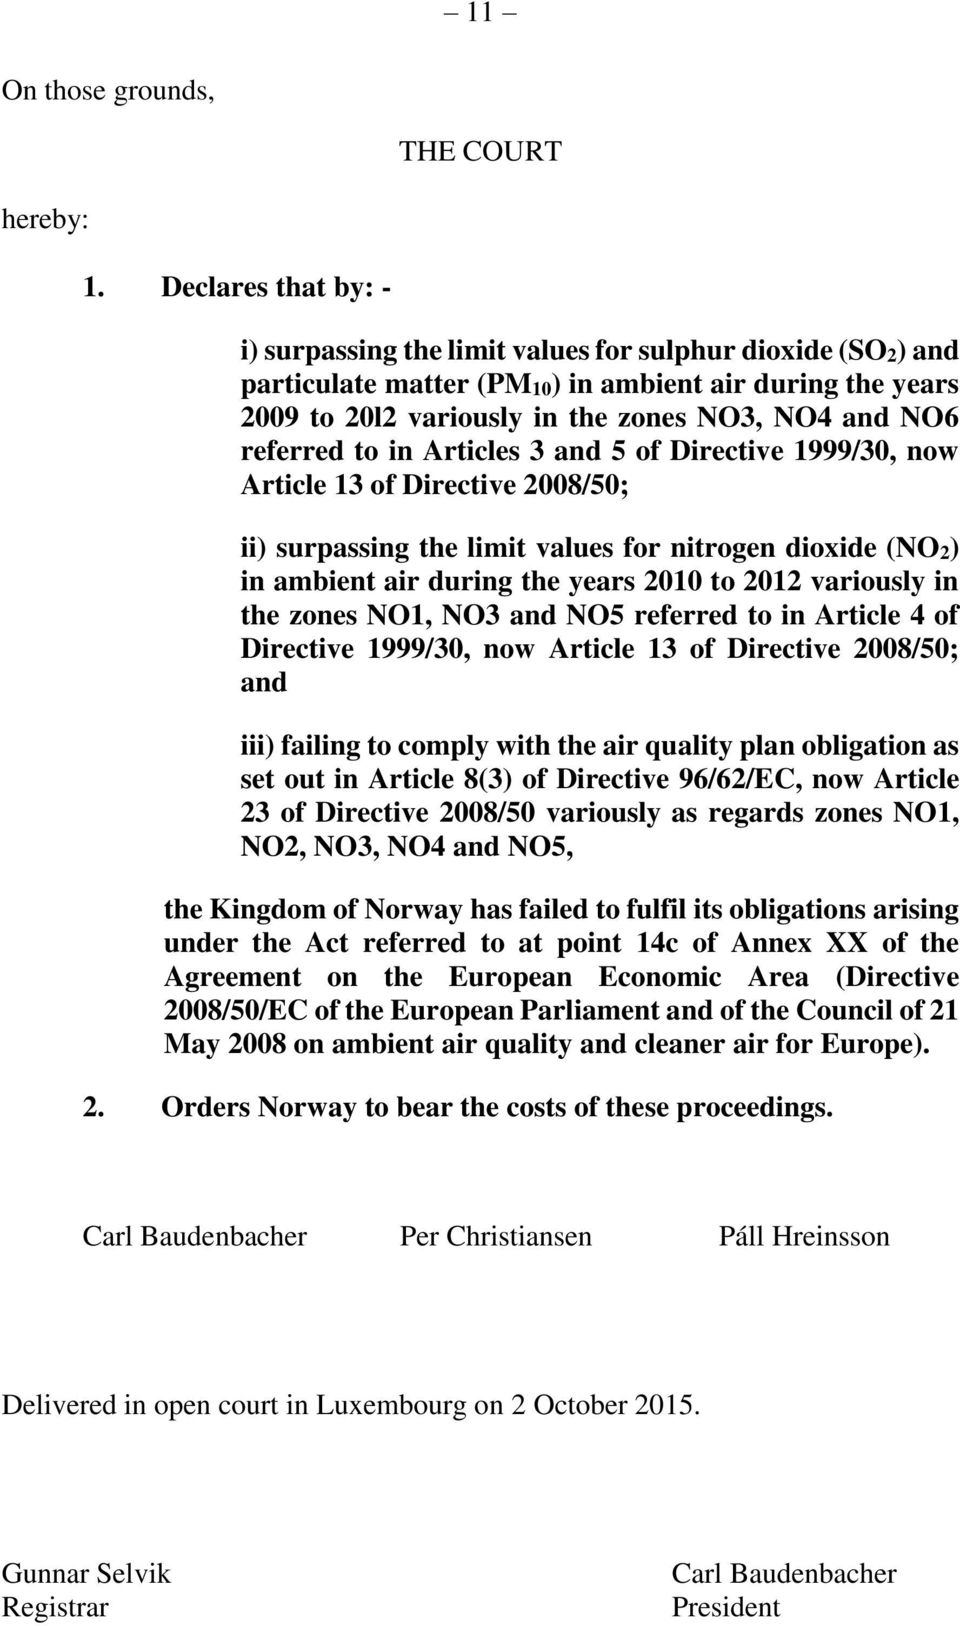 referred to in Articles 3 and 5 of Directive 1999/30, now Article 13 of Directive 2008/50; ii) surpassing the limit values for nitrogen dioxide (NO2) in ambient air during the years 2010 to 2012